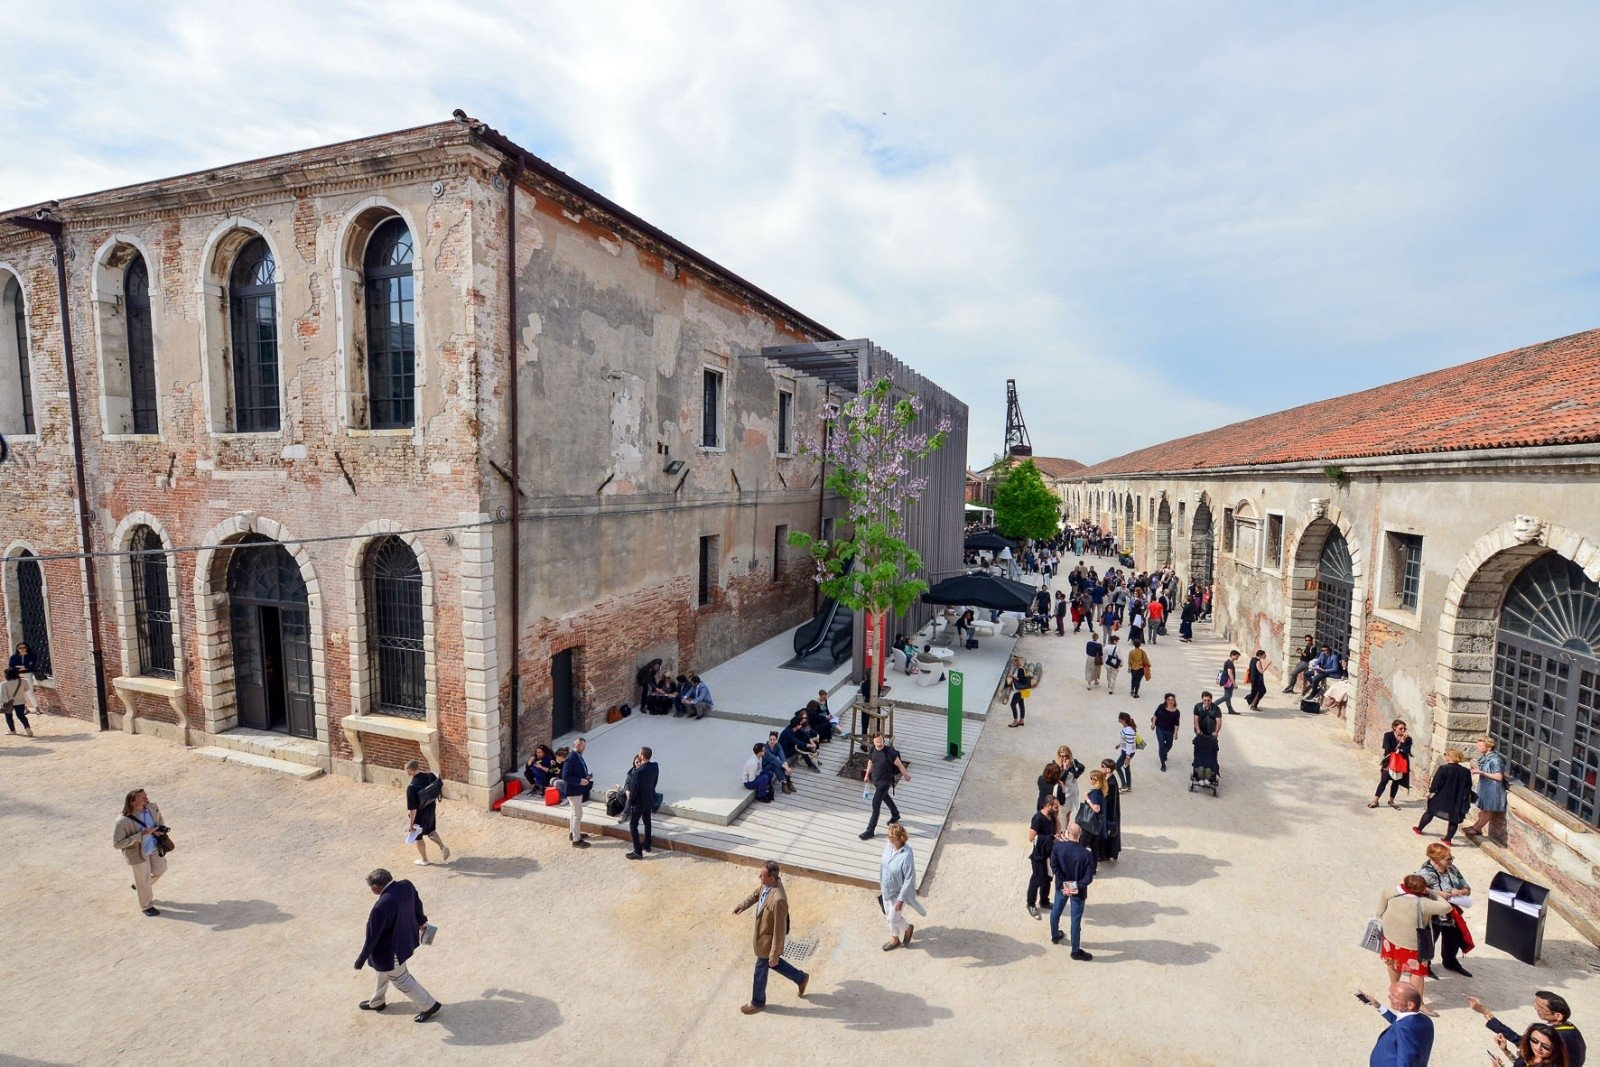 An outside view from Sale d'Armi, Arsenale, where the Pavilion of Turkey takes place. (Courtesy of IKSV)